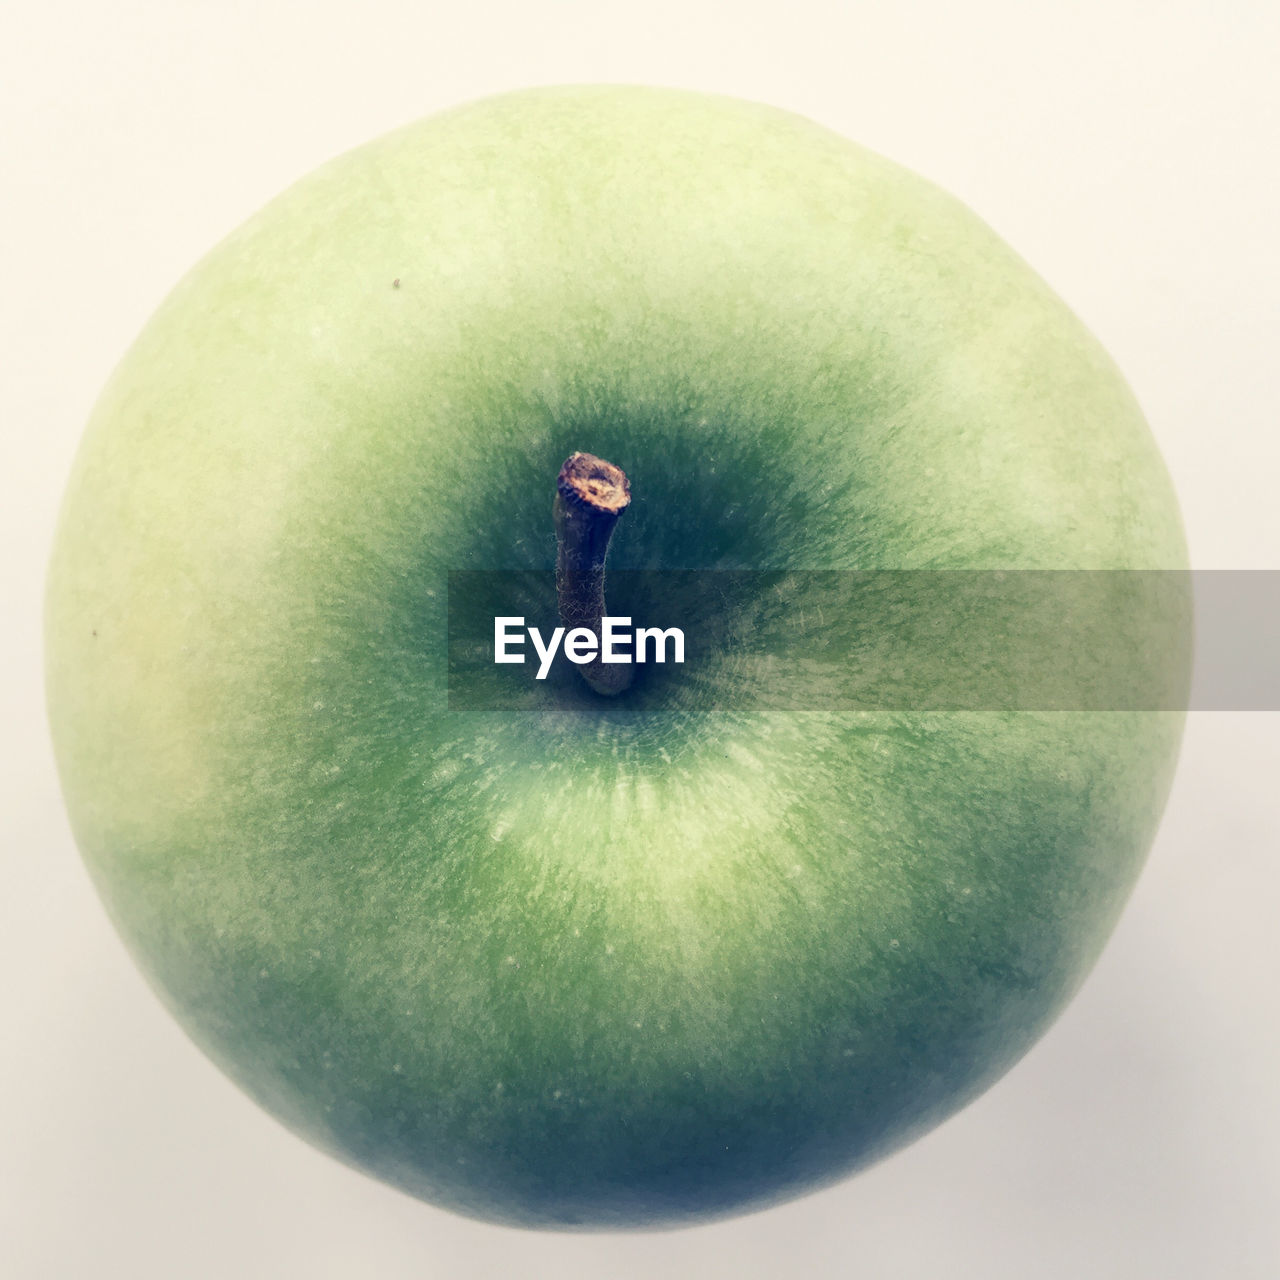 fruit, food and drink, healthy eating, freshness, food, apple - fruit, studio shot, green color, apple, granny smith apple, close-up, single object, white background, ripe, no people, mango, indoors, day